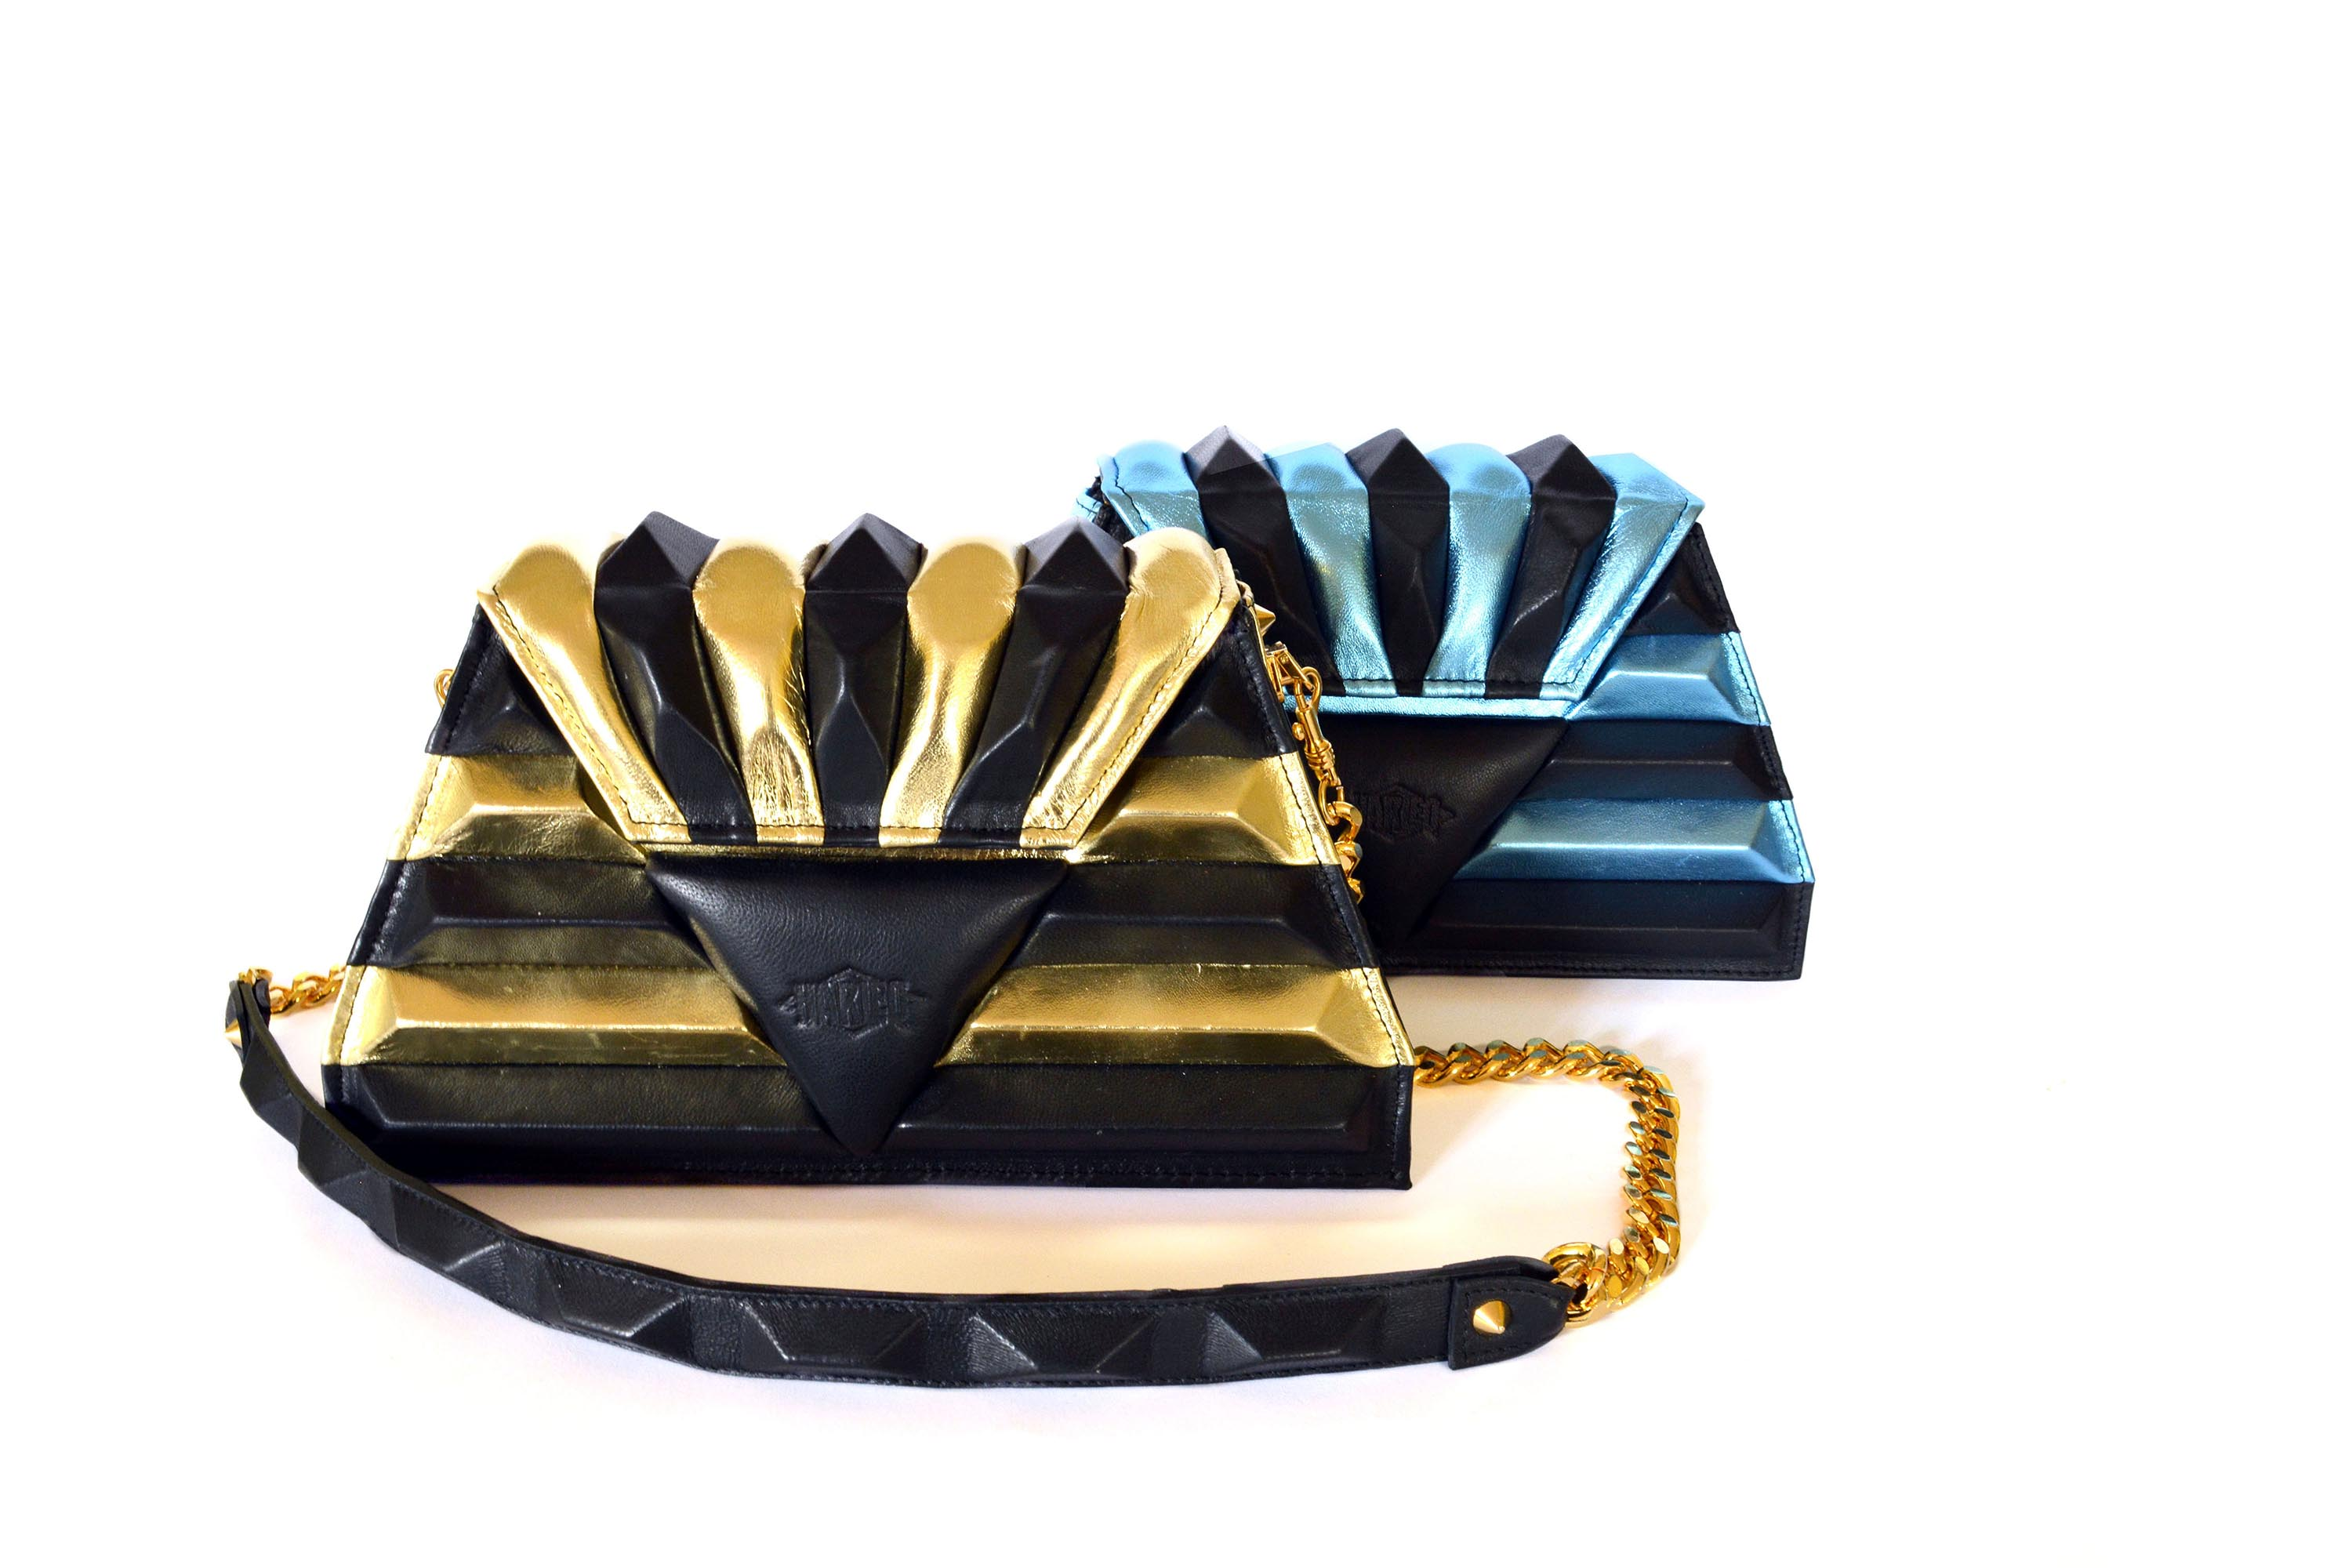 golden-blue-harleq-sphinx-bags